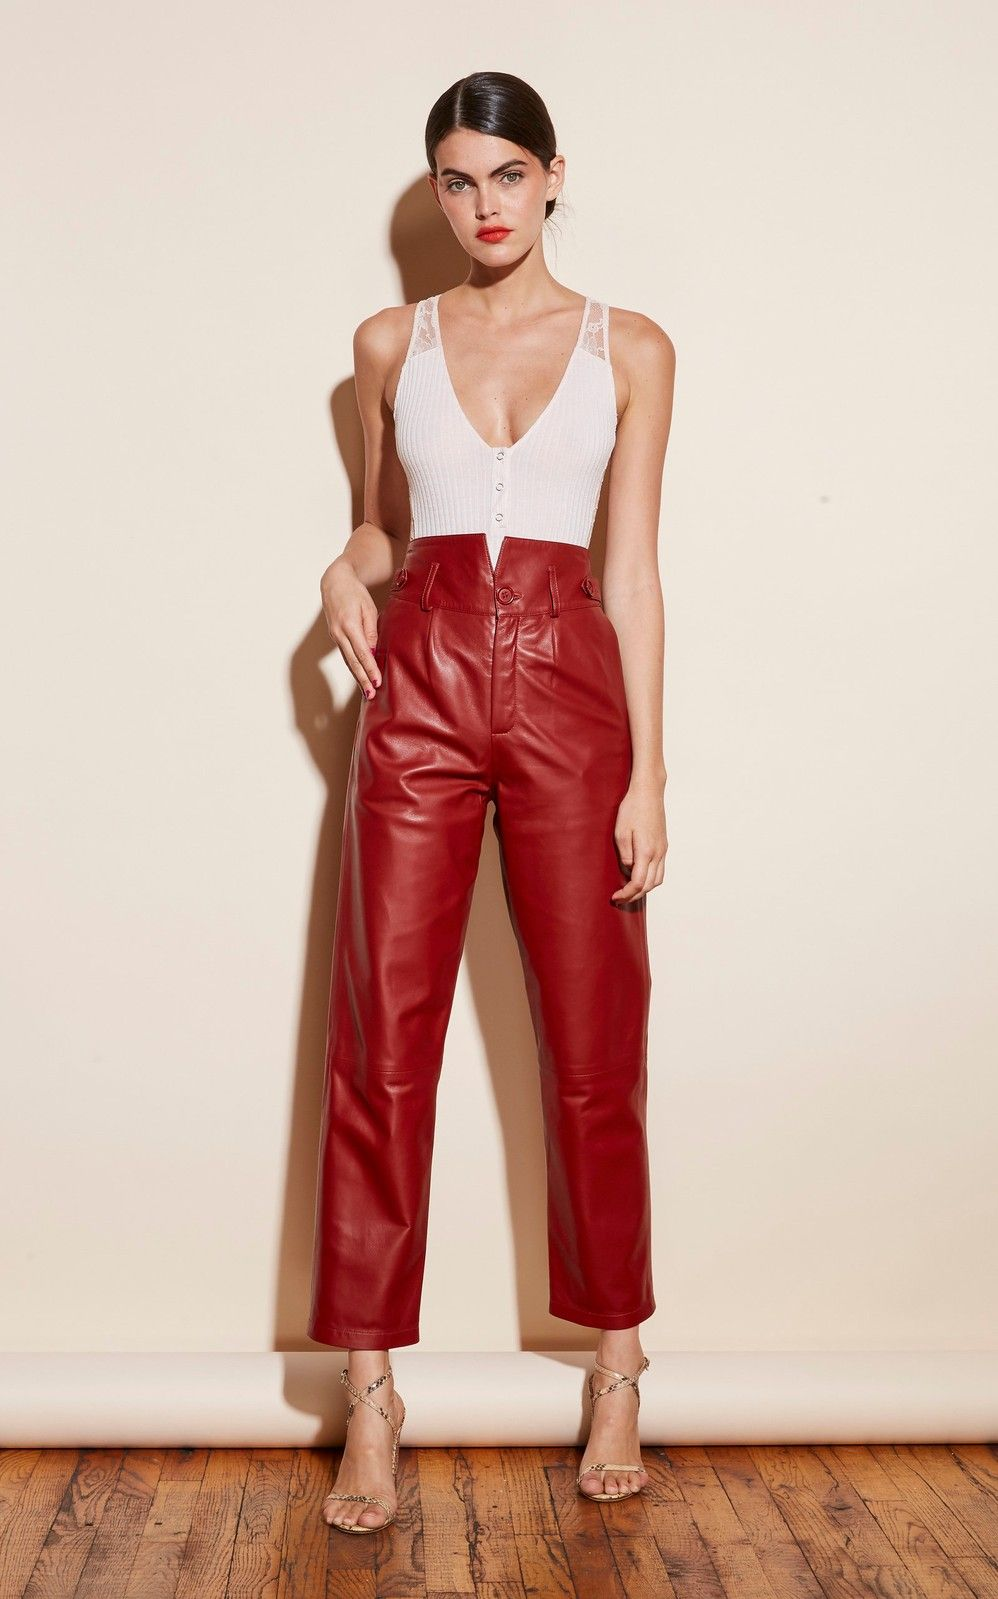 Pin By Fena Lap On Fall Looks In 2020 Ribbed Bodysuit Waist Pants Eccentric Clothes